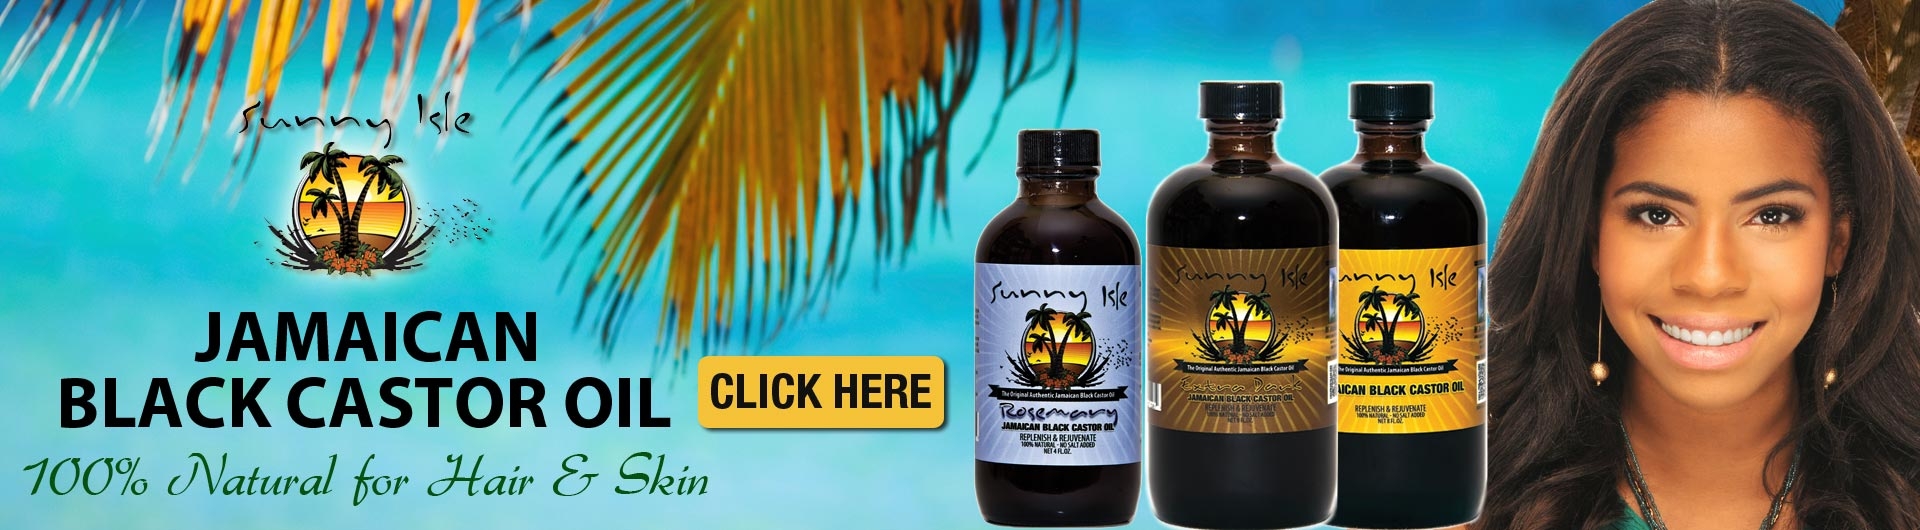 Sunny Isle authentic Jamaican Black Castor Oil available at JamaicanProductsUSA.com